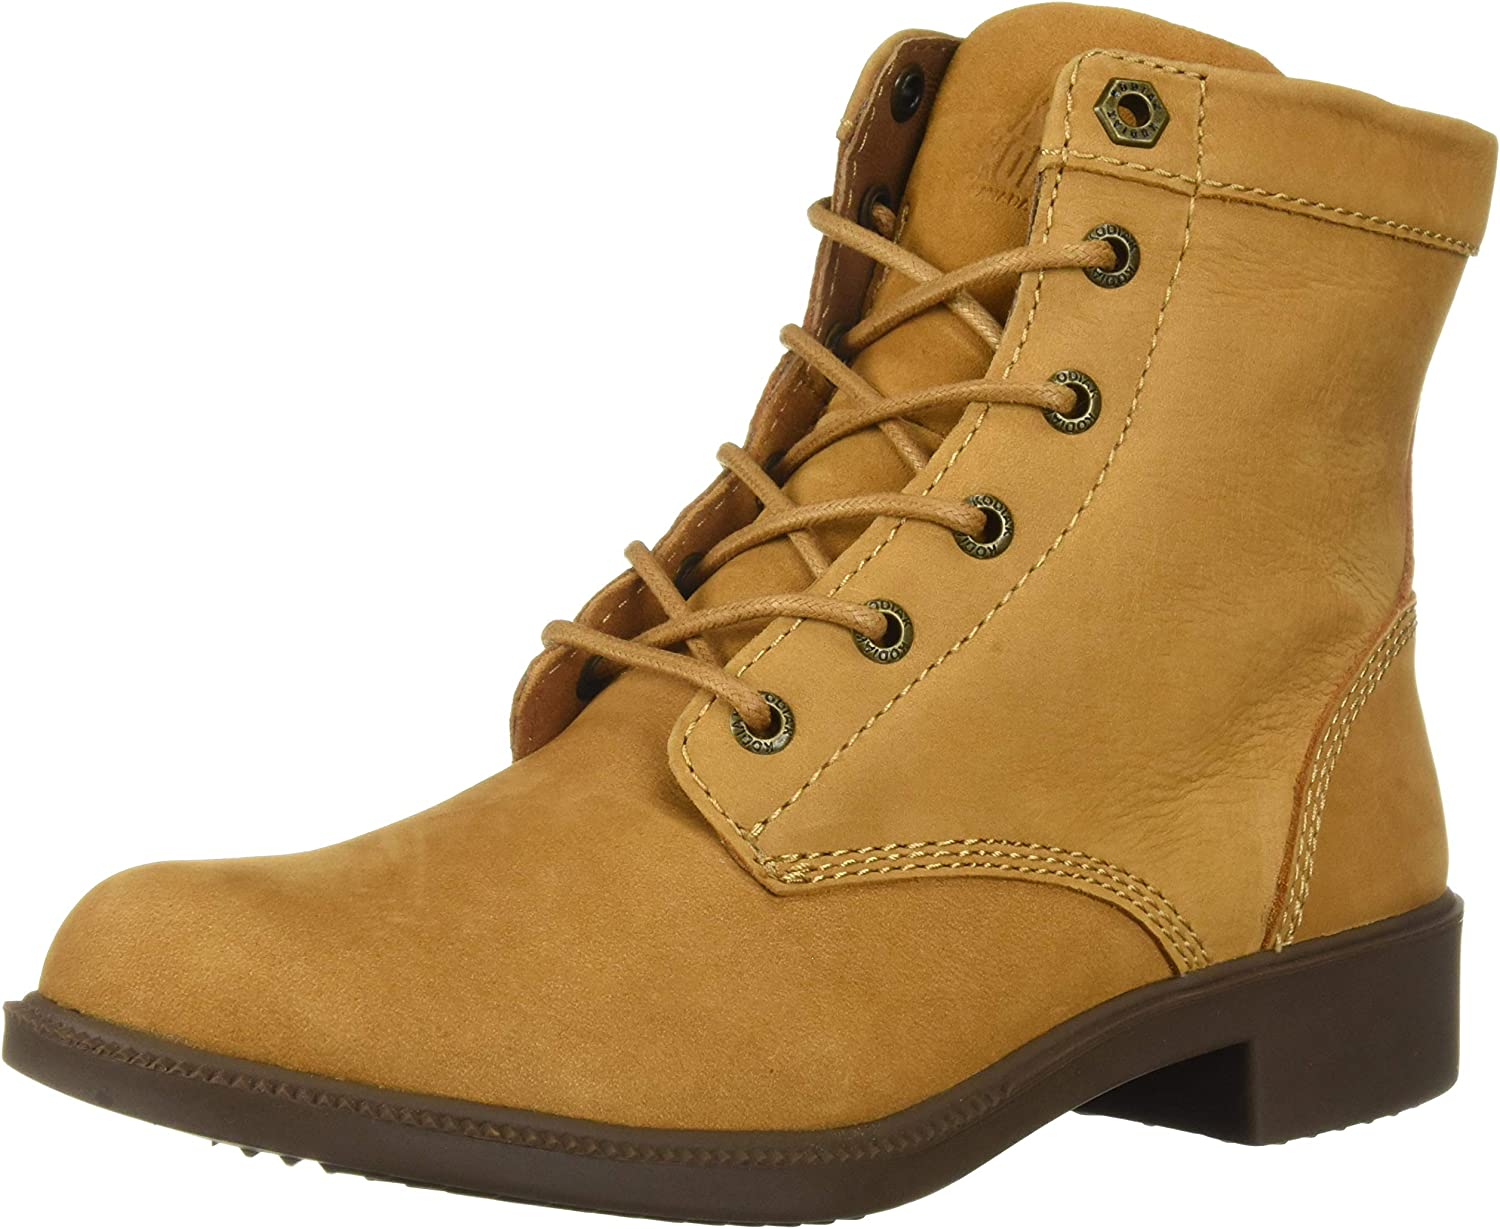 Kodiak Womens Original Ankle Boot